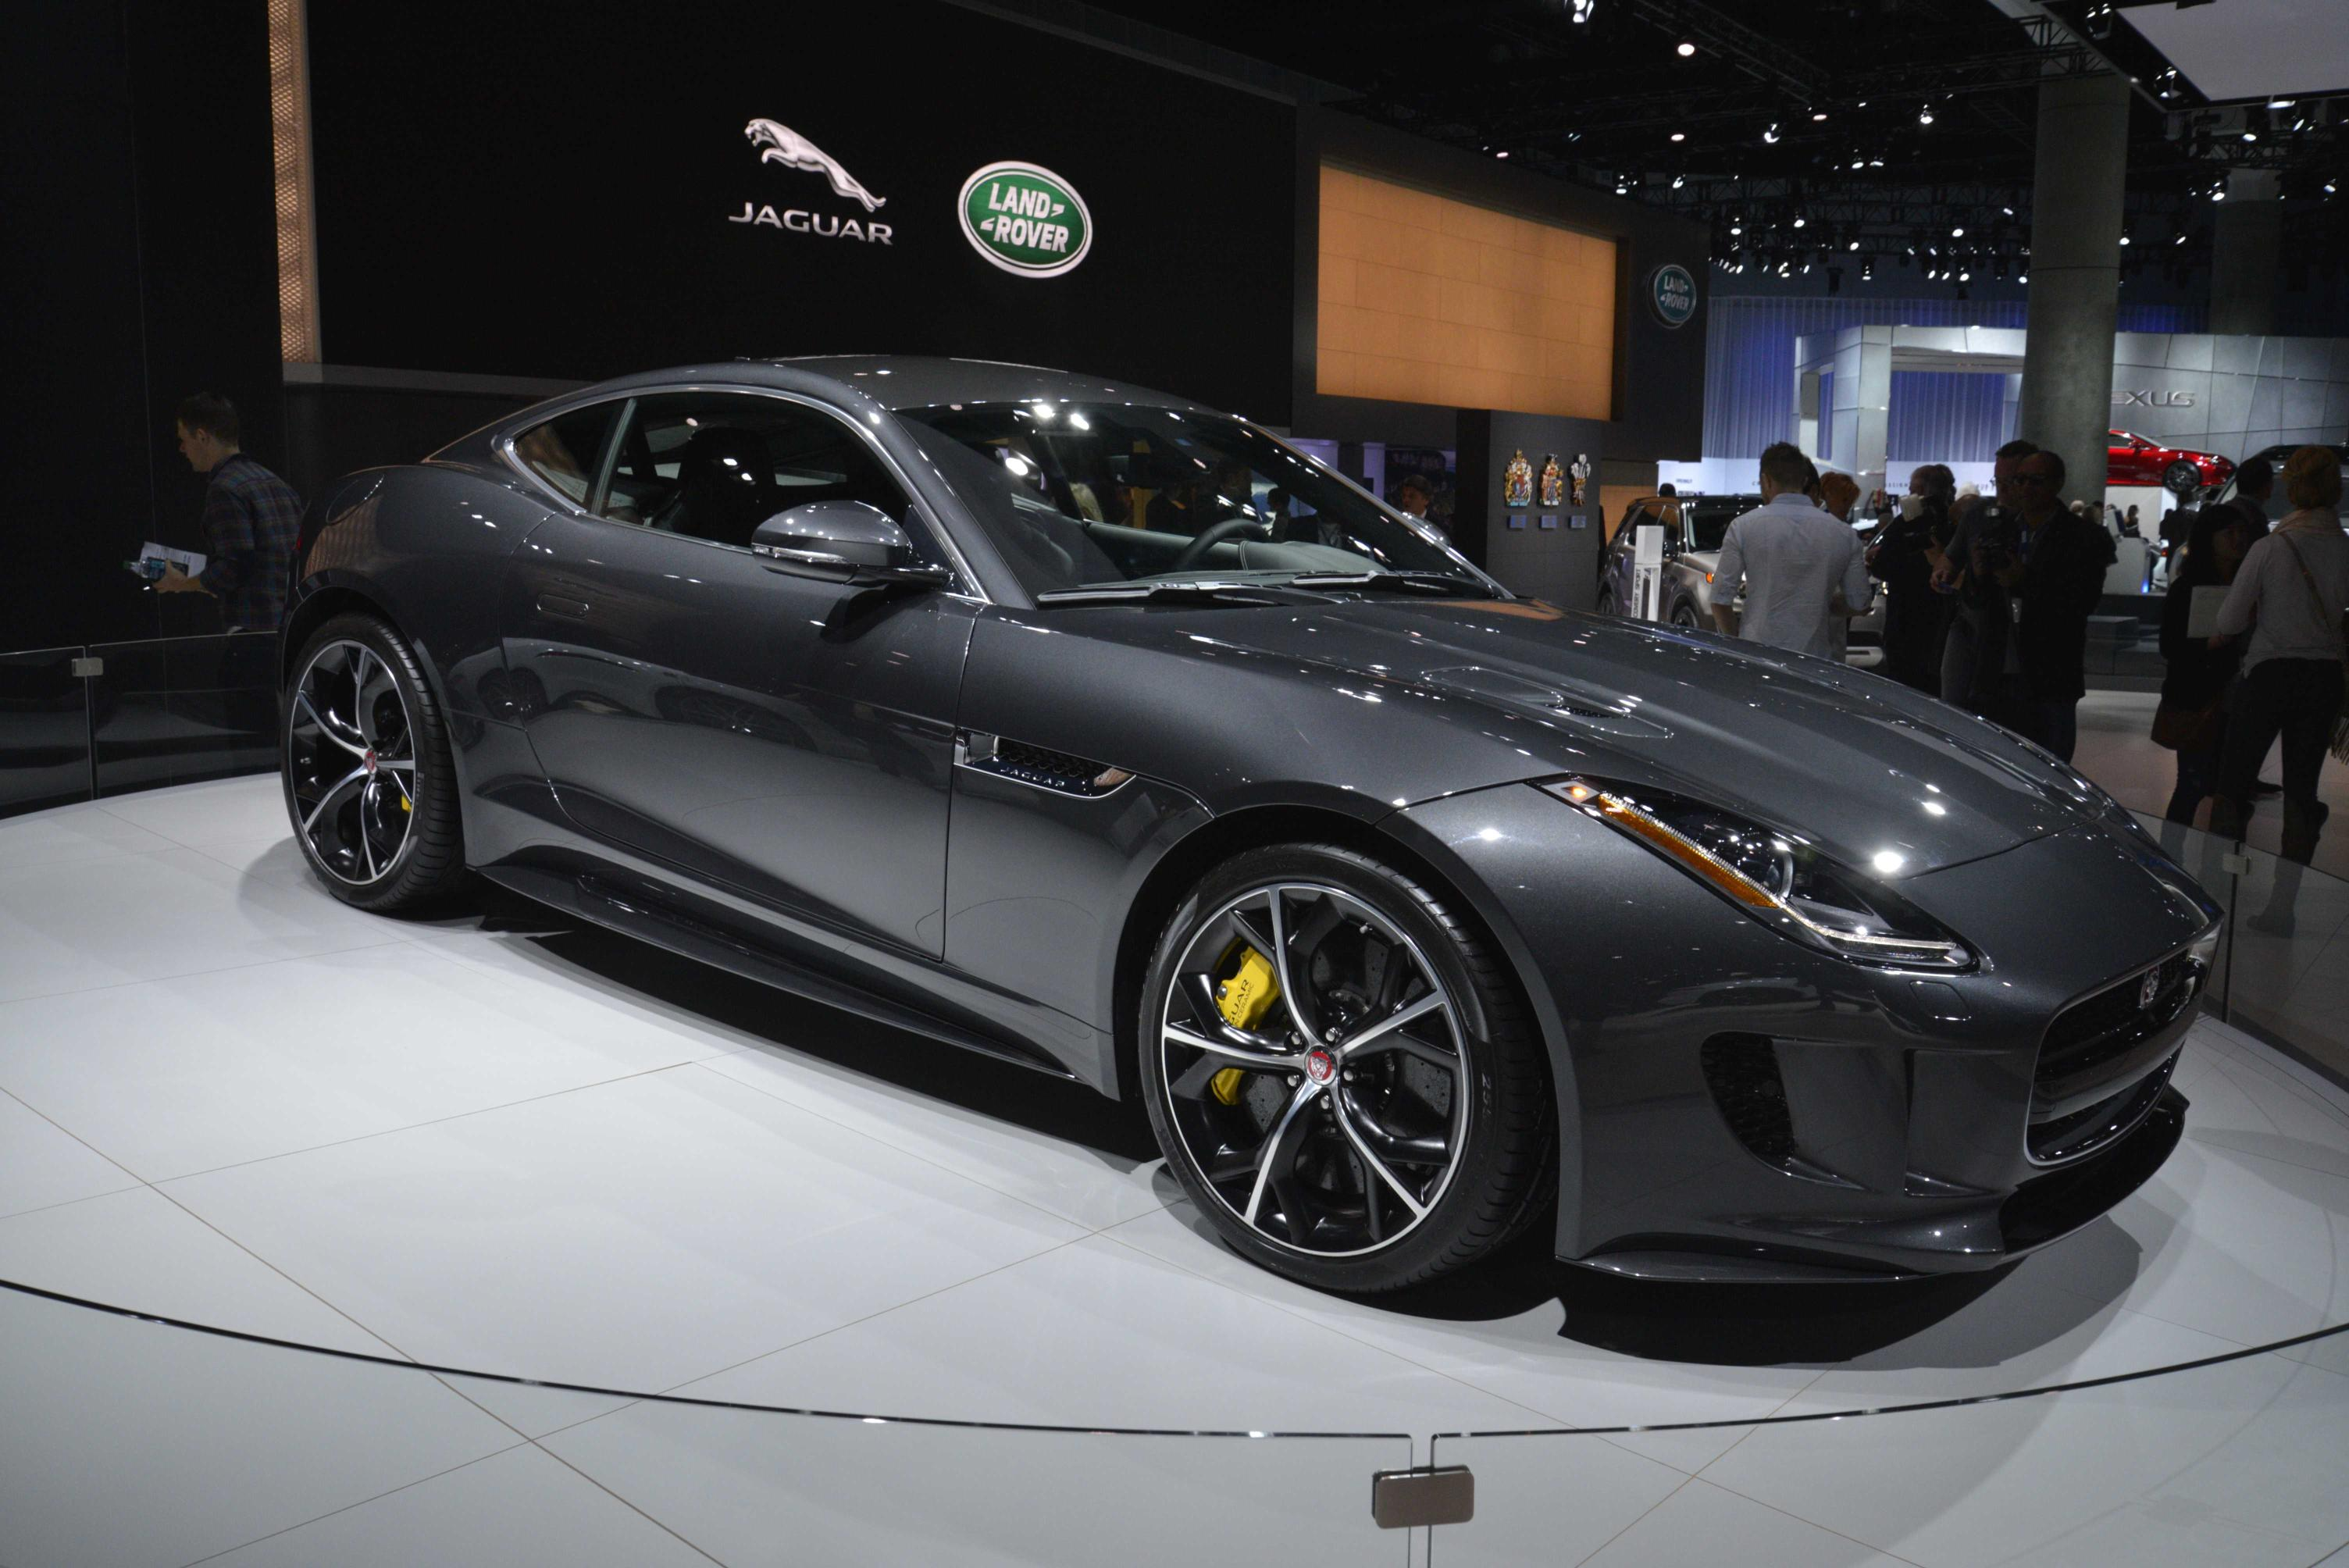 upgrade tuning highlands f type jaguar bhp predator bumper sale and upgrades product for styling sun front